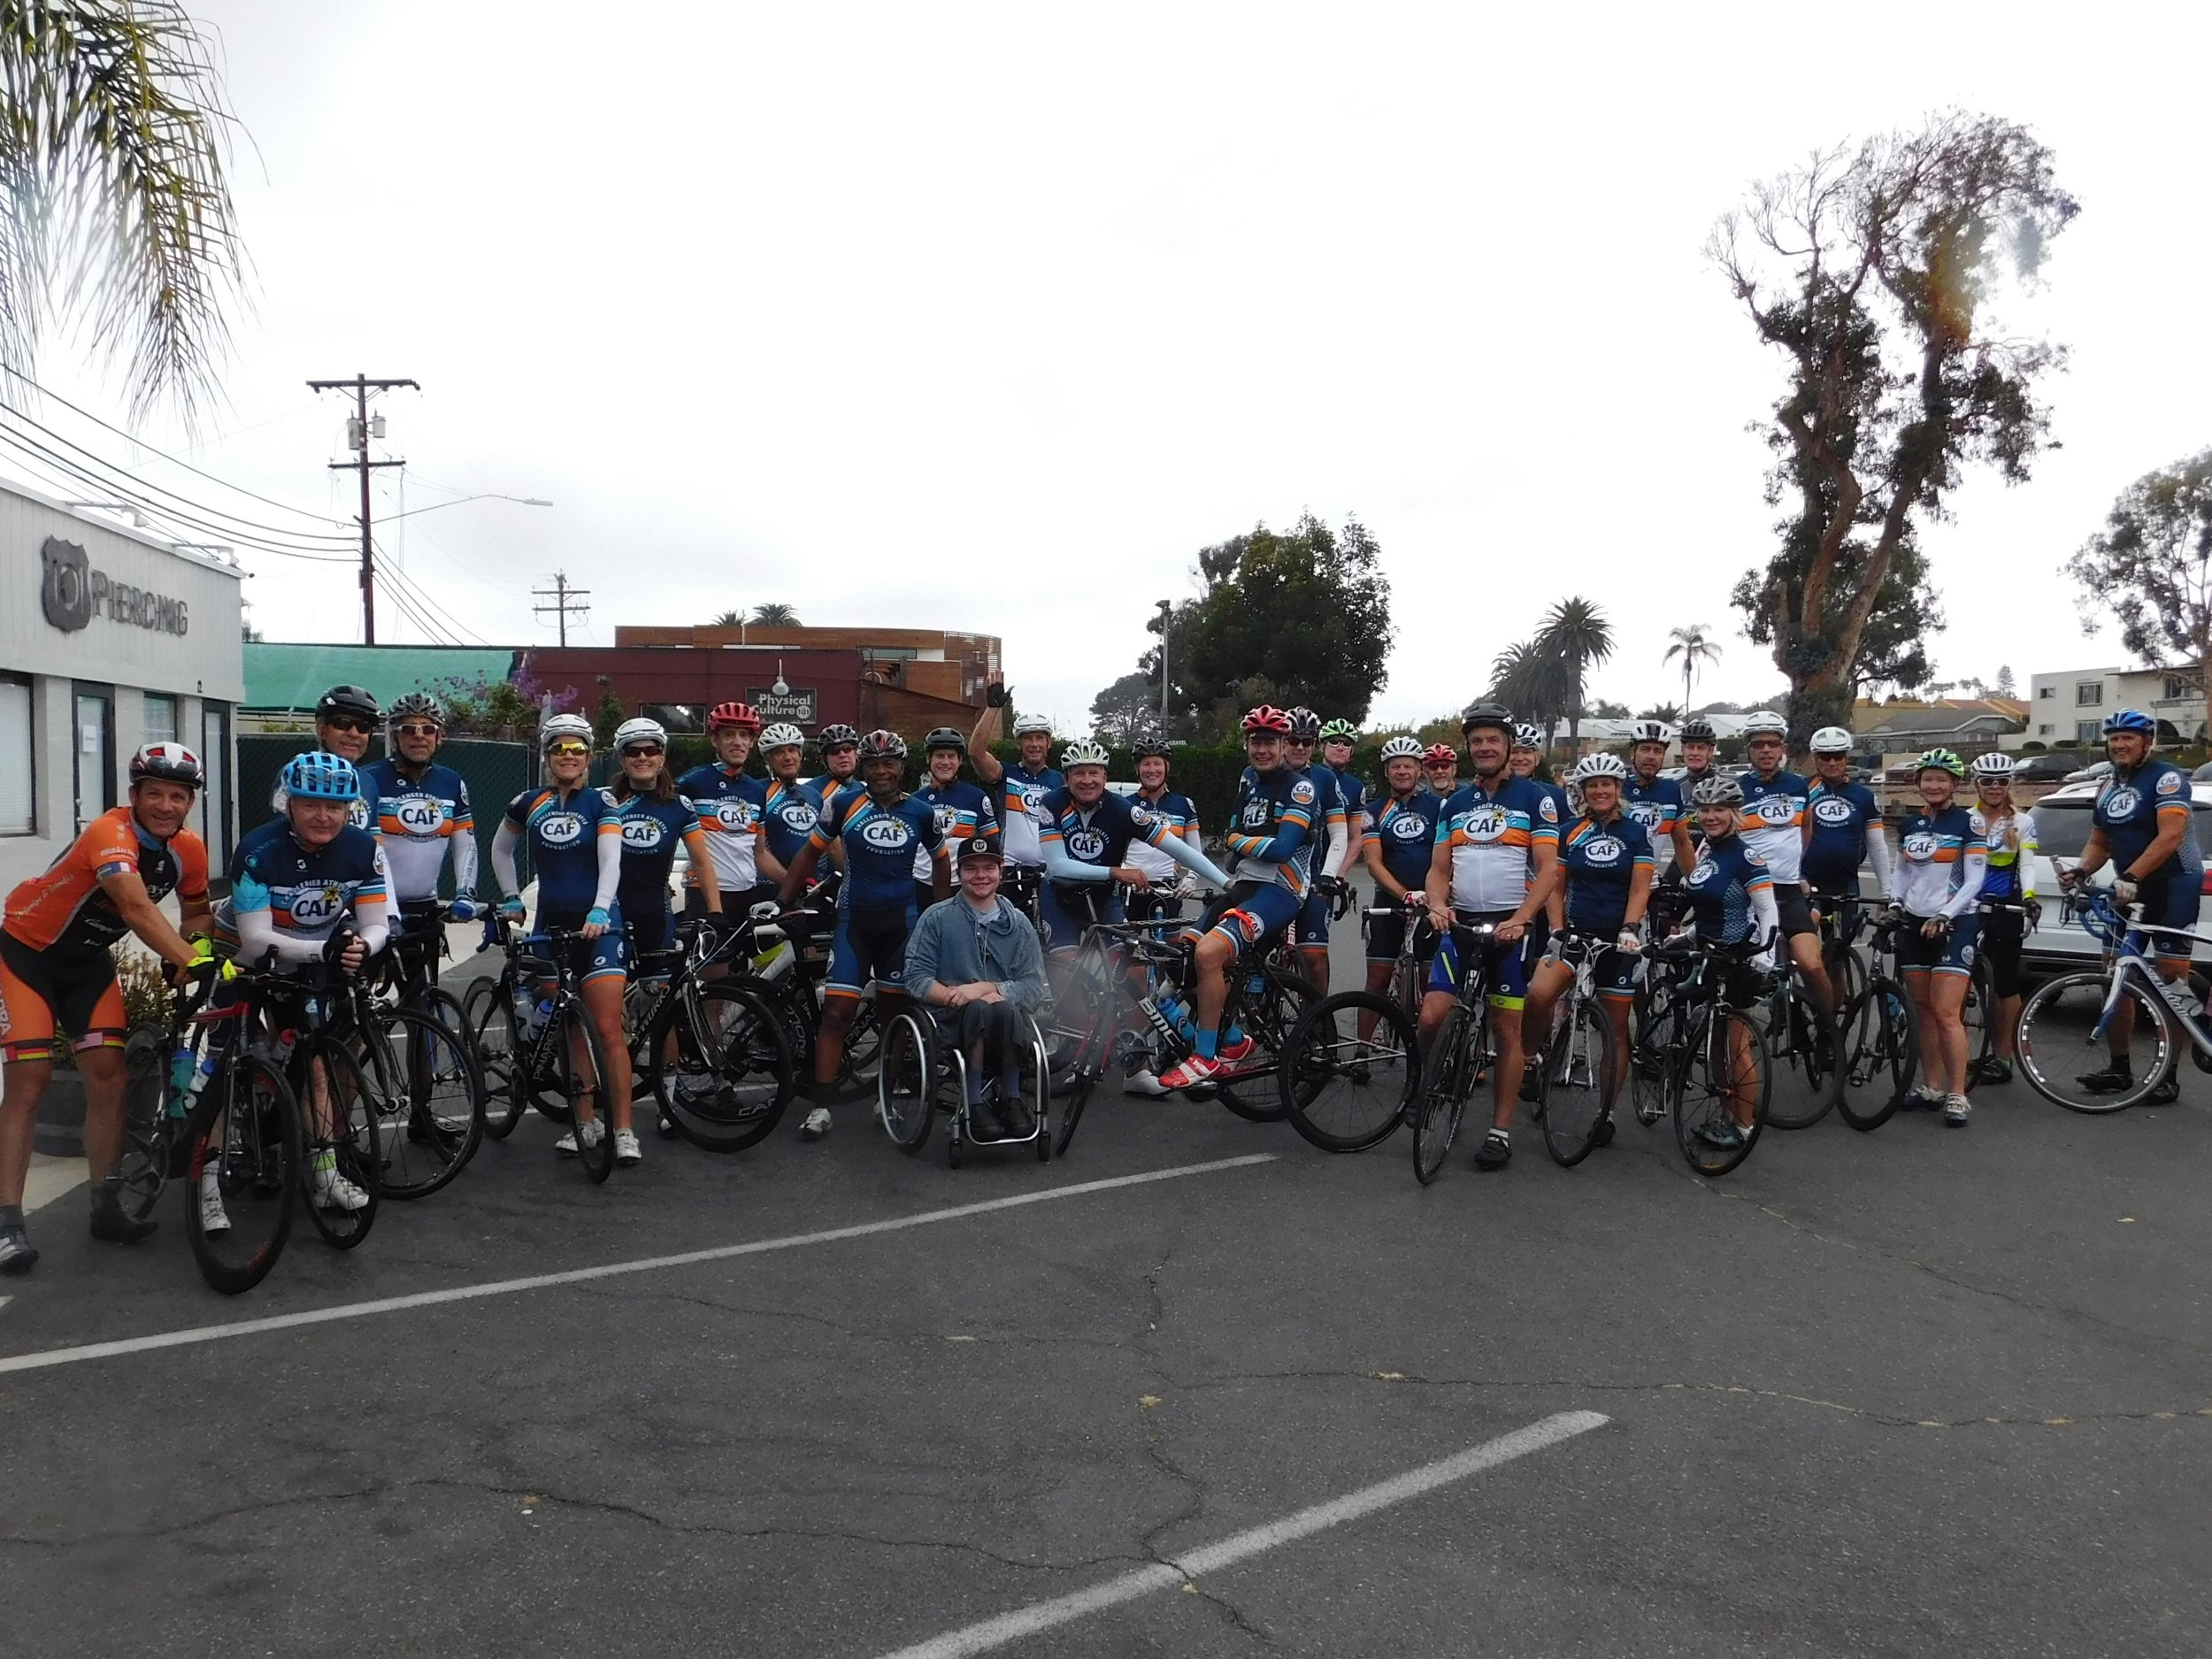 Challenged Athletes Foundation Cycling Club meets Team Joey riders and rolls out with us at our start. Thanks CAF for being a part of our event this year!